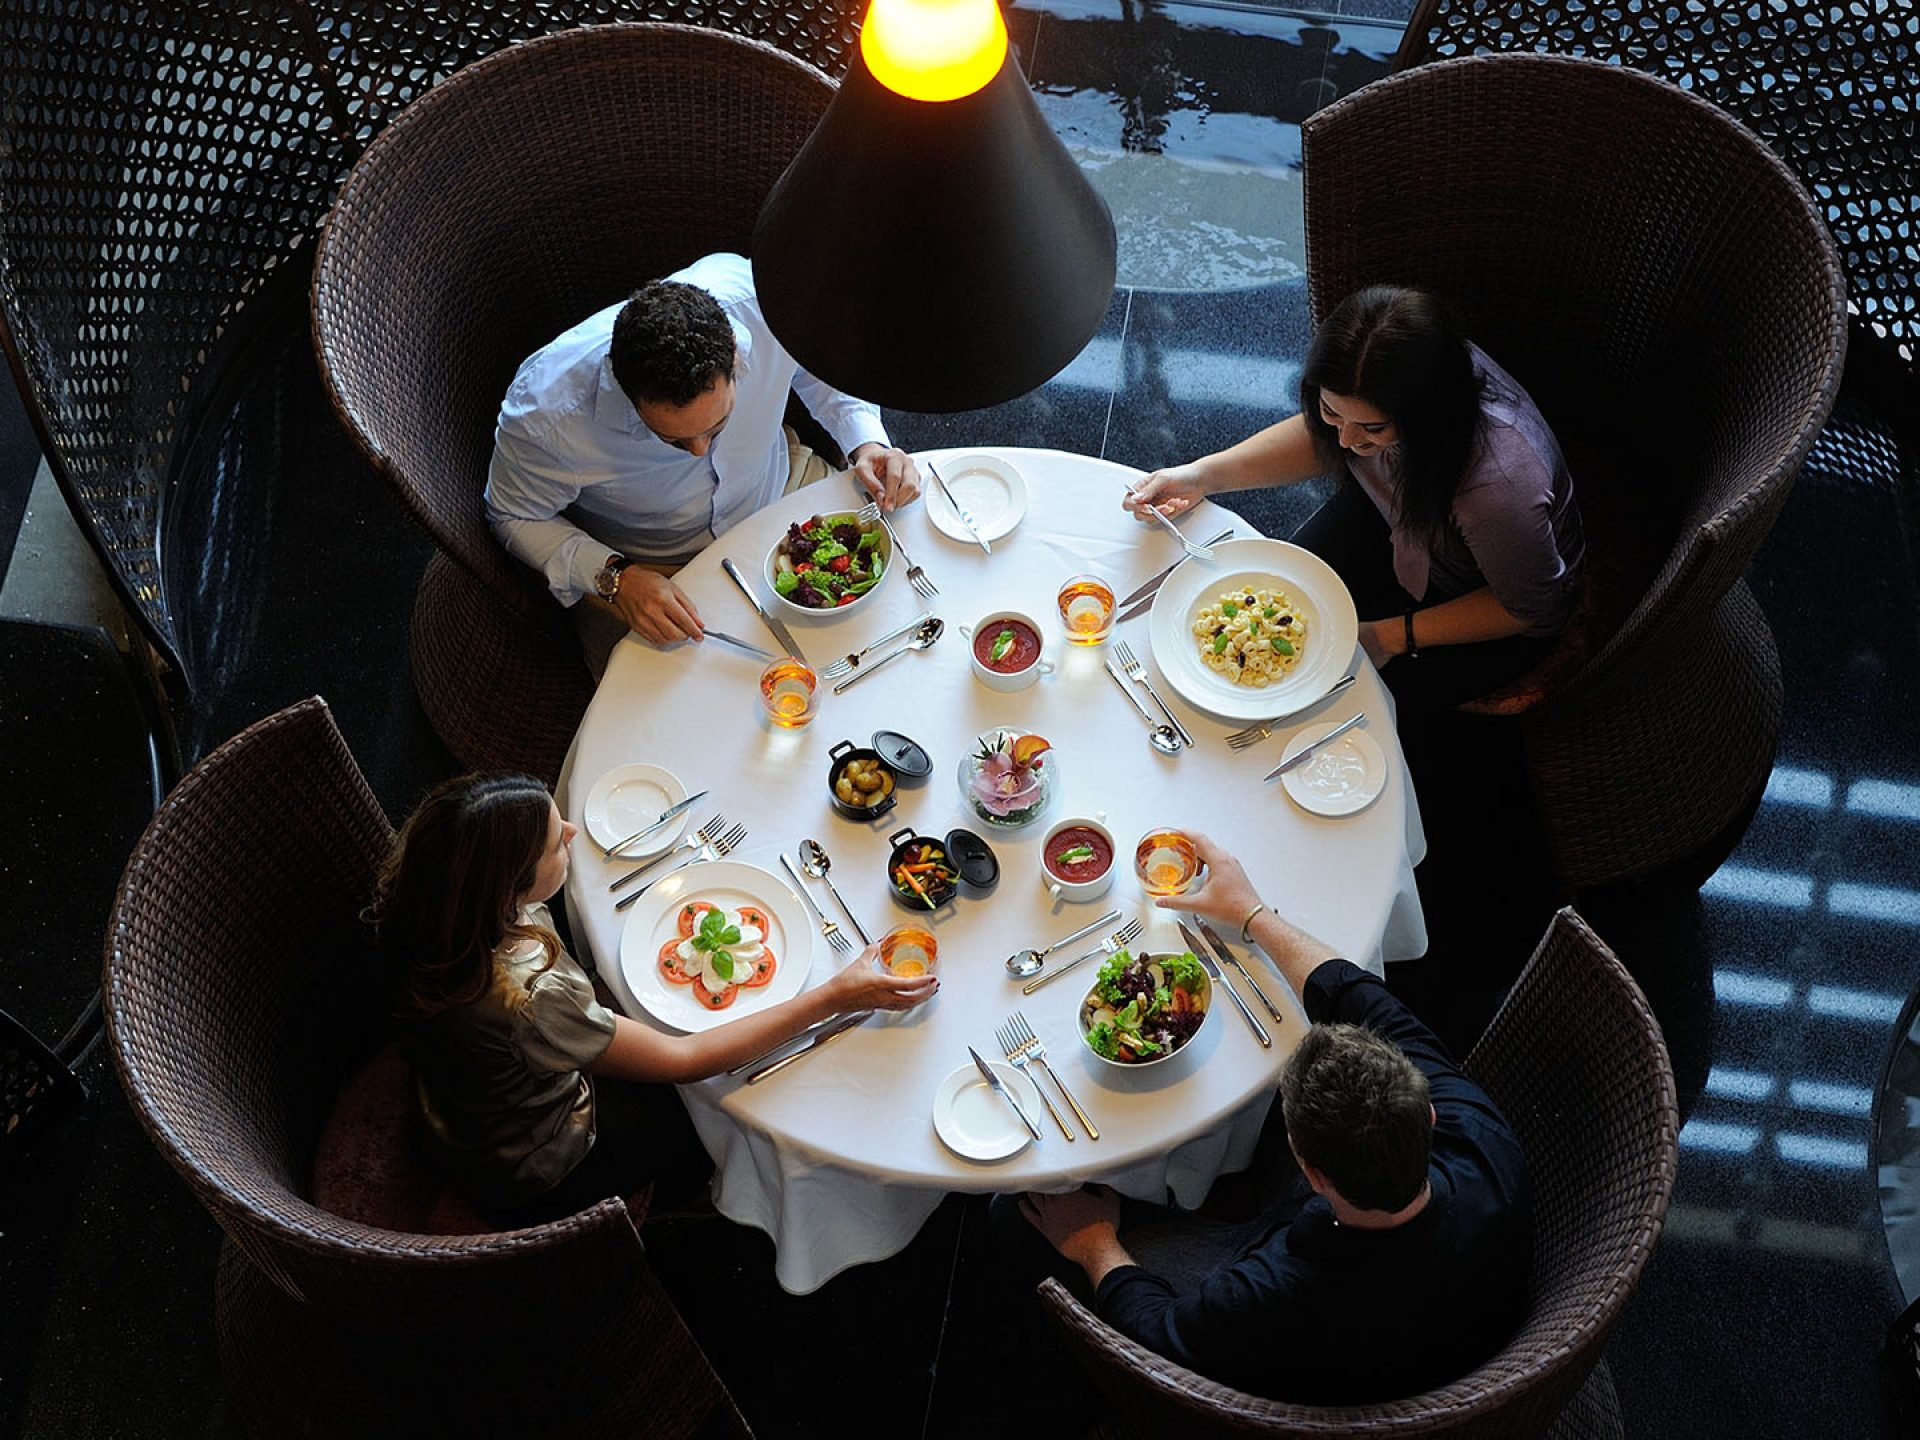 Aerial View Of People At Table In Restaurant